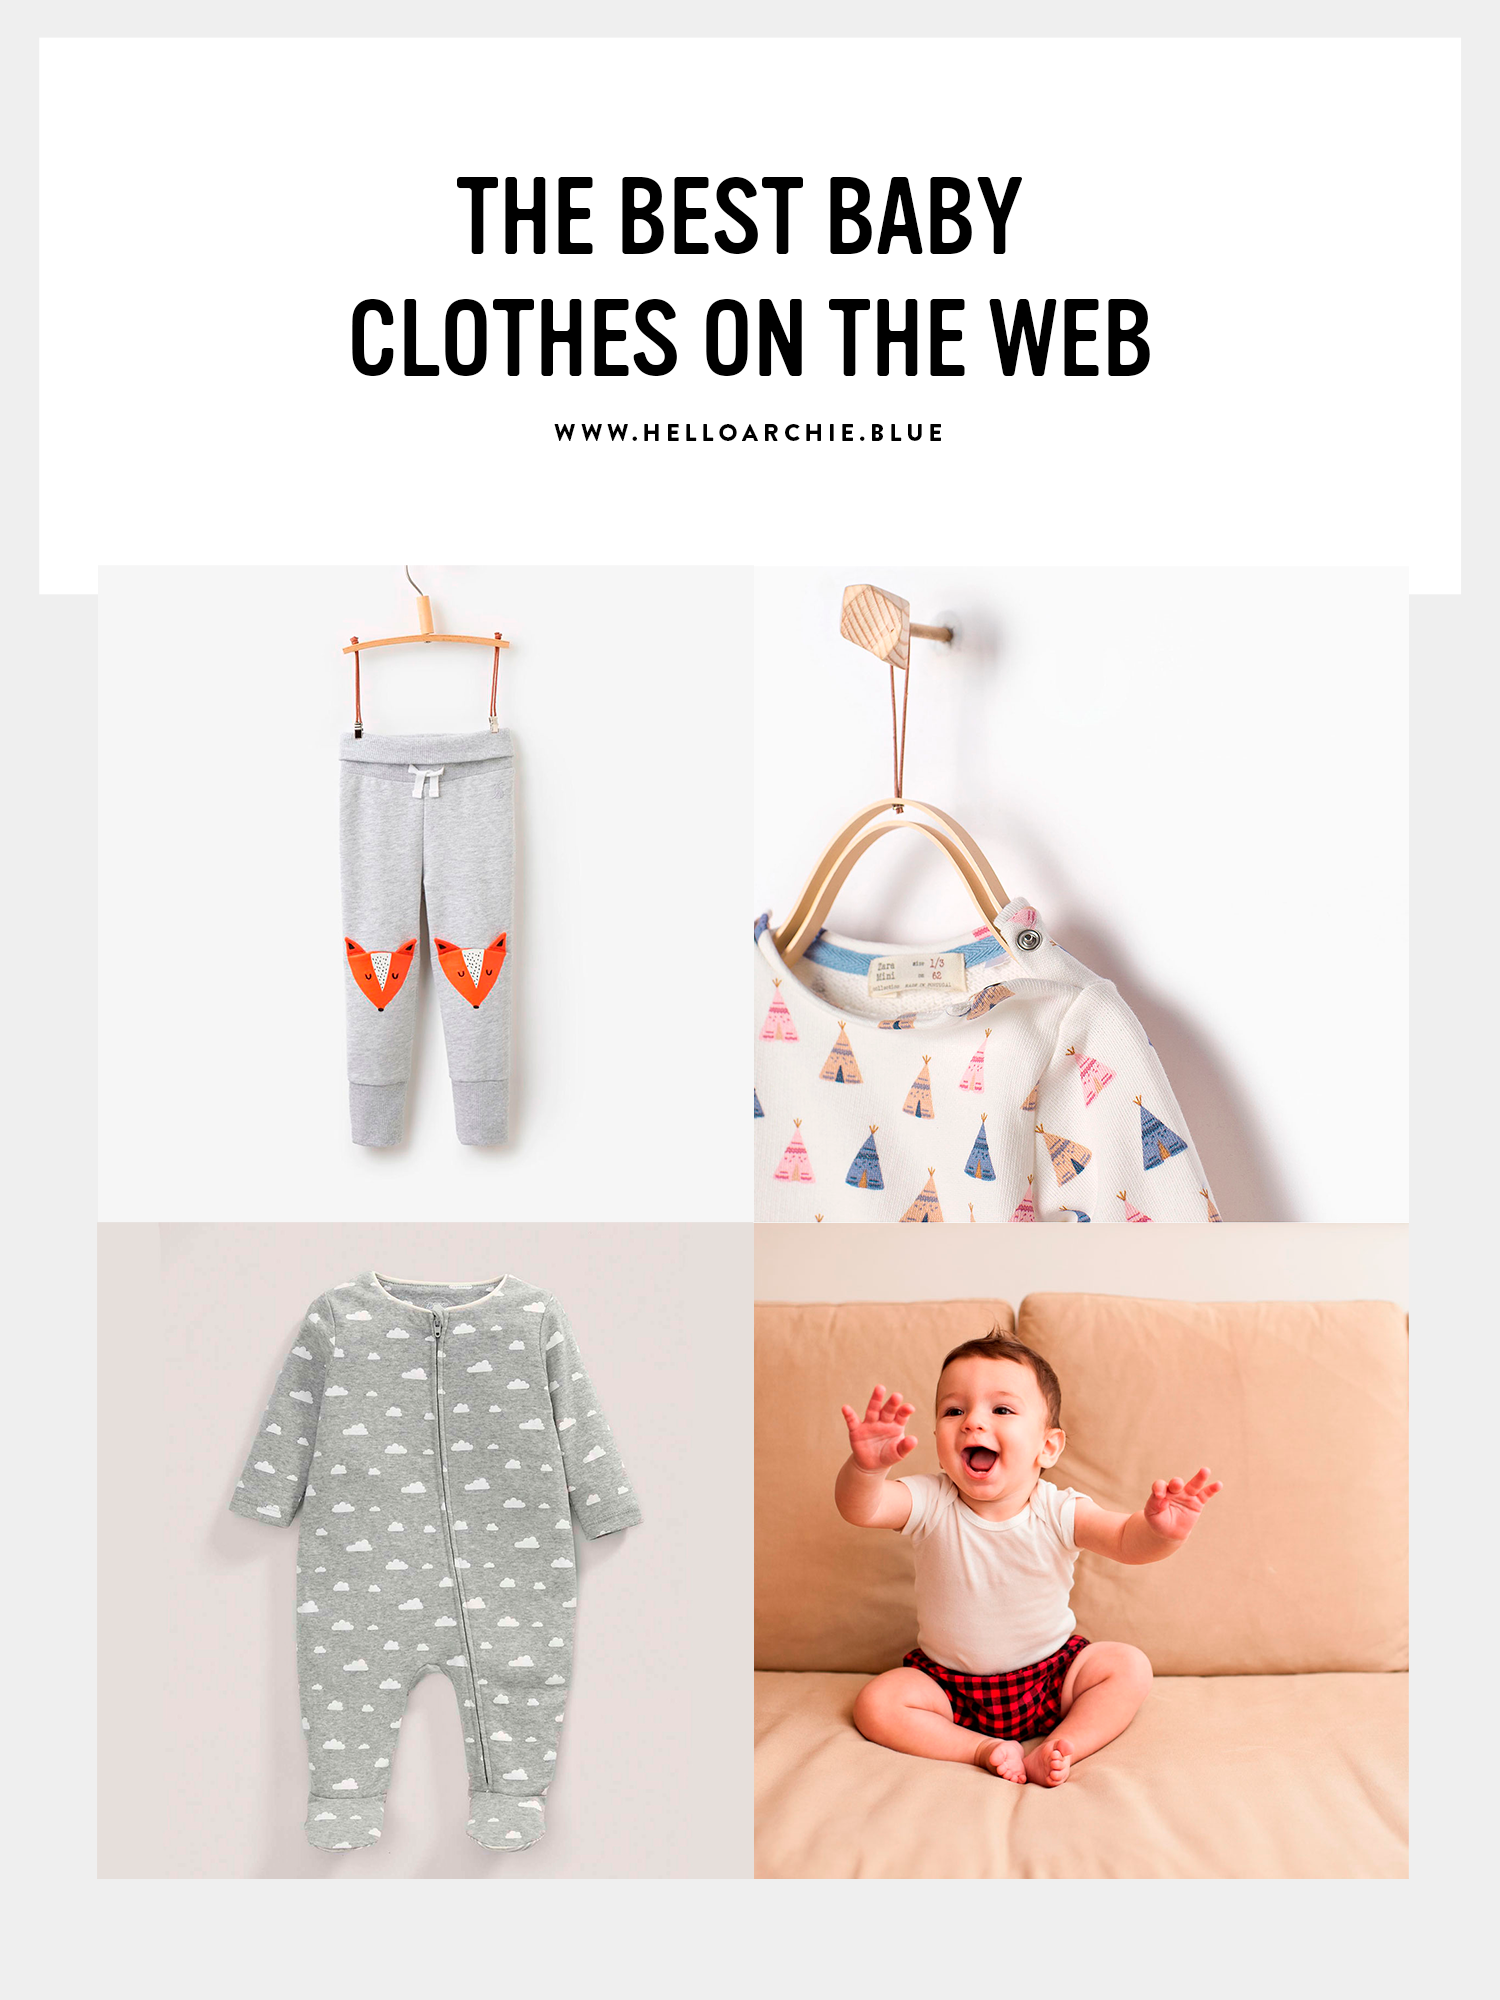 The Best Baby Clothes on the Web - My Favourites!